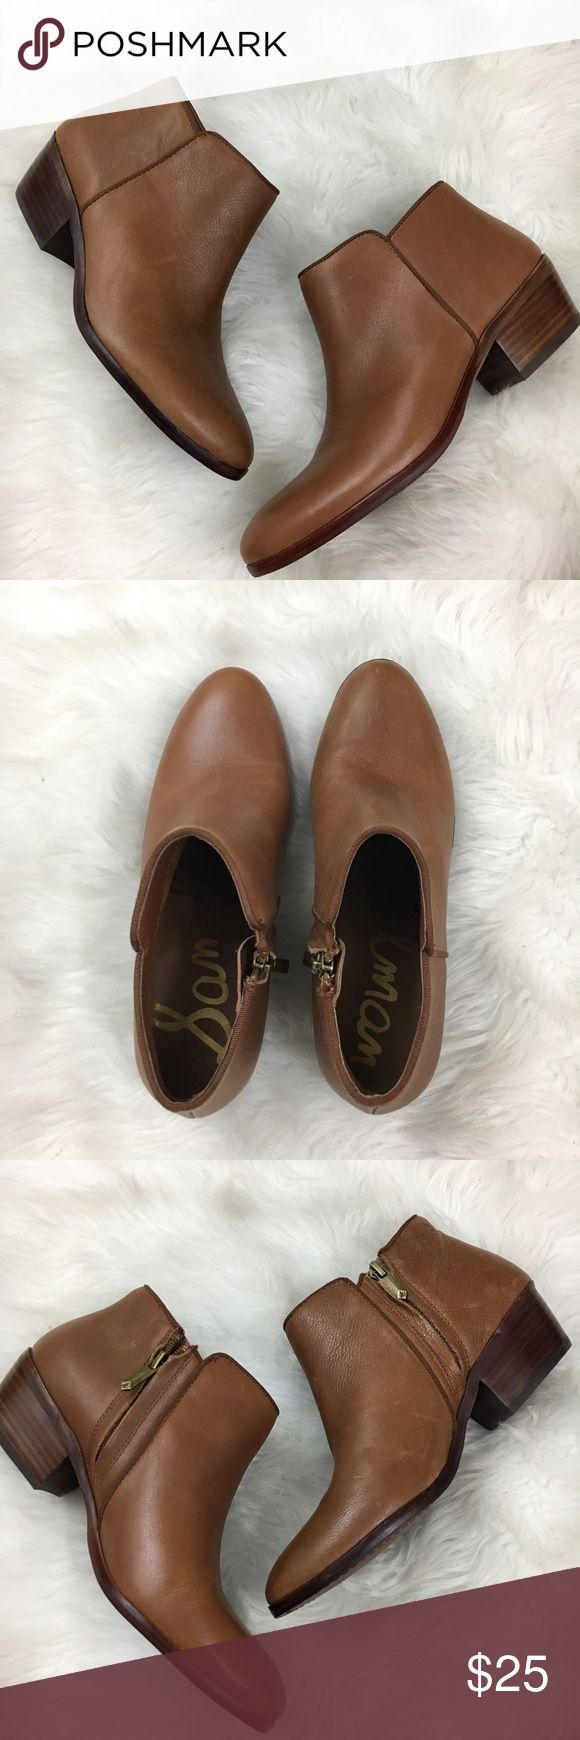 """Sam Edelman Petty Chelsea ankle boot tan leather 7 Leather ankle boot, Chelsea style, side zip, heel height 1.5"""". One boot was a display shoe, so it has a slight different appearance, once you wear the other one in, you won't be able to tell the difference. Sam Edelman Shoes Ankle Boots & Booties"""